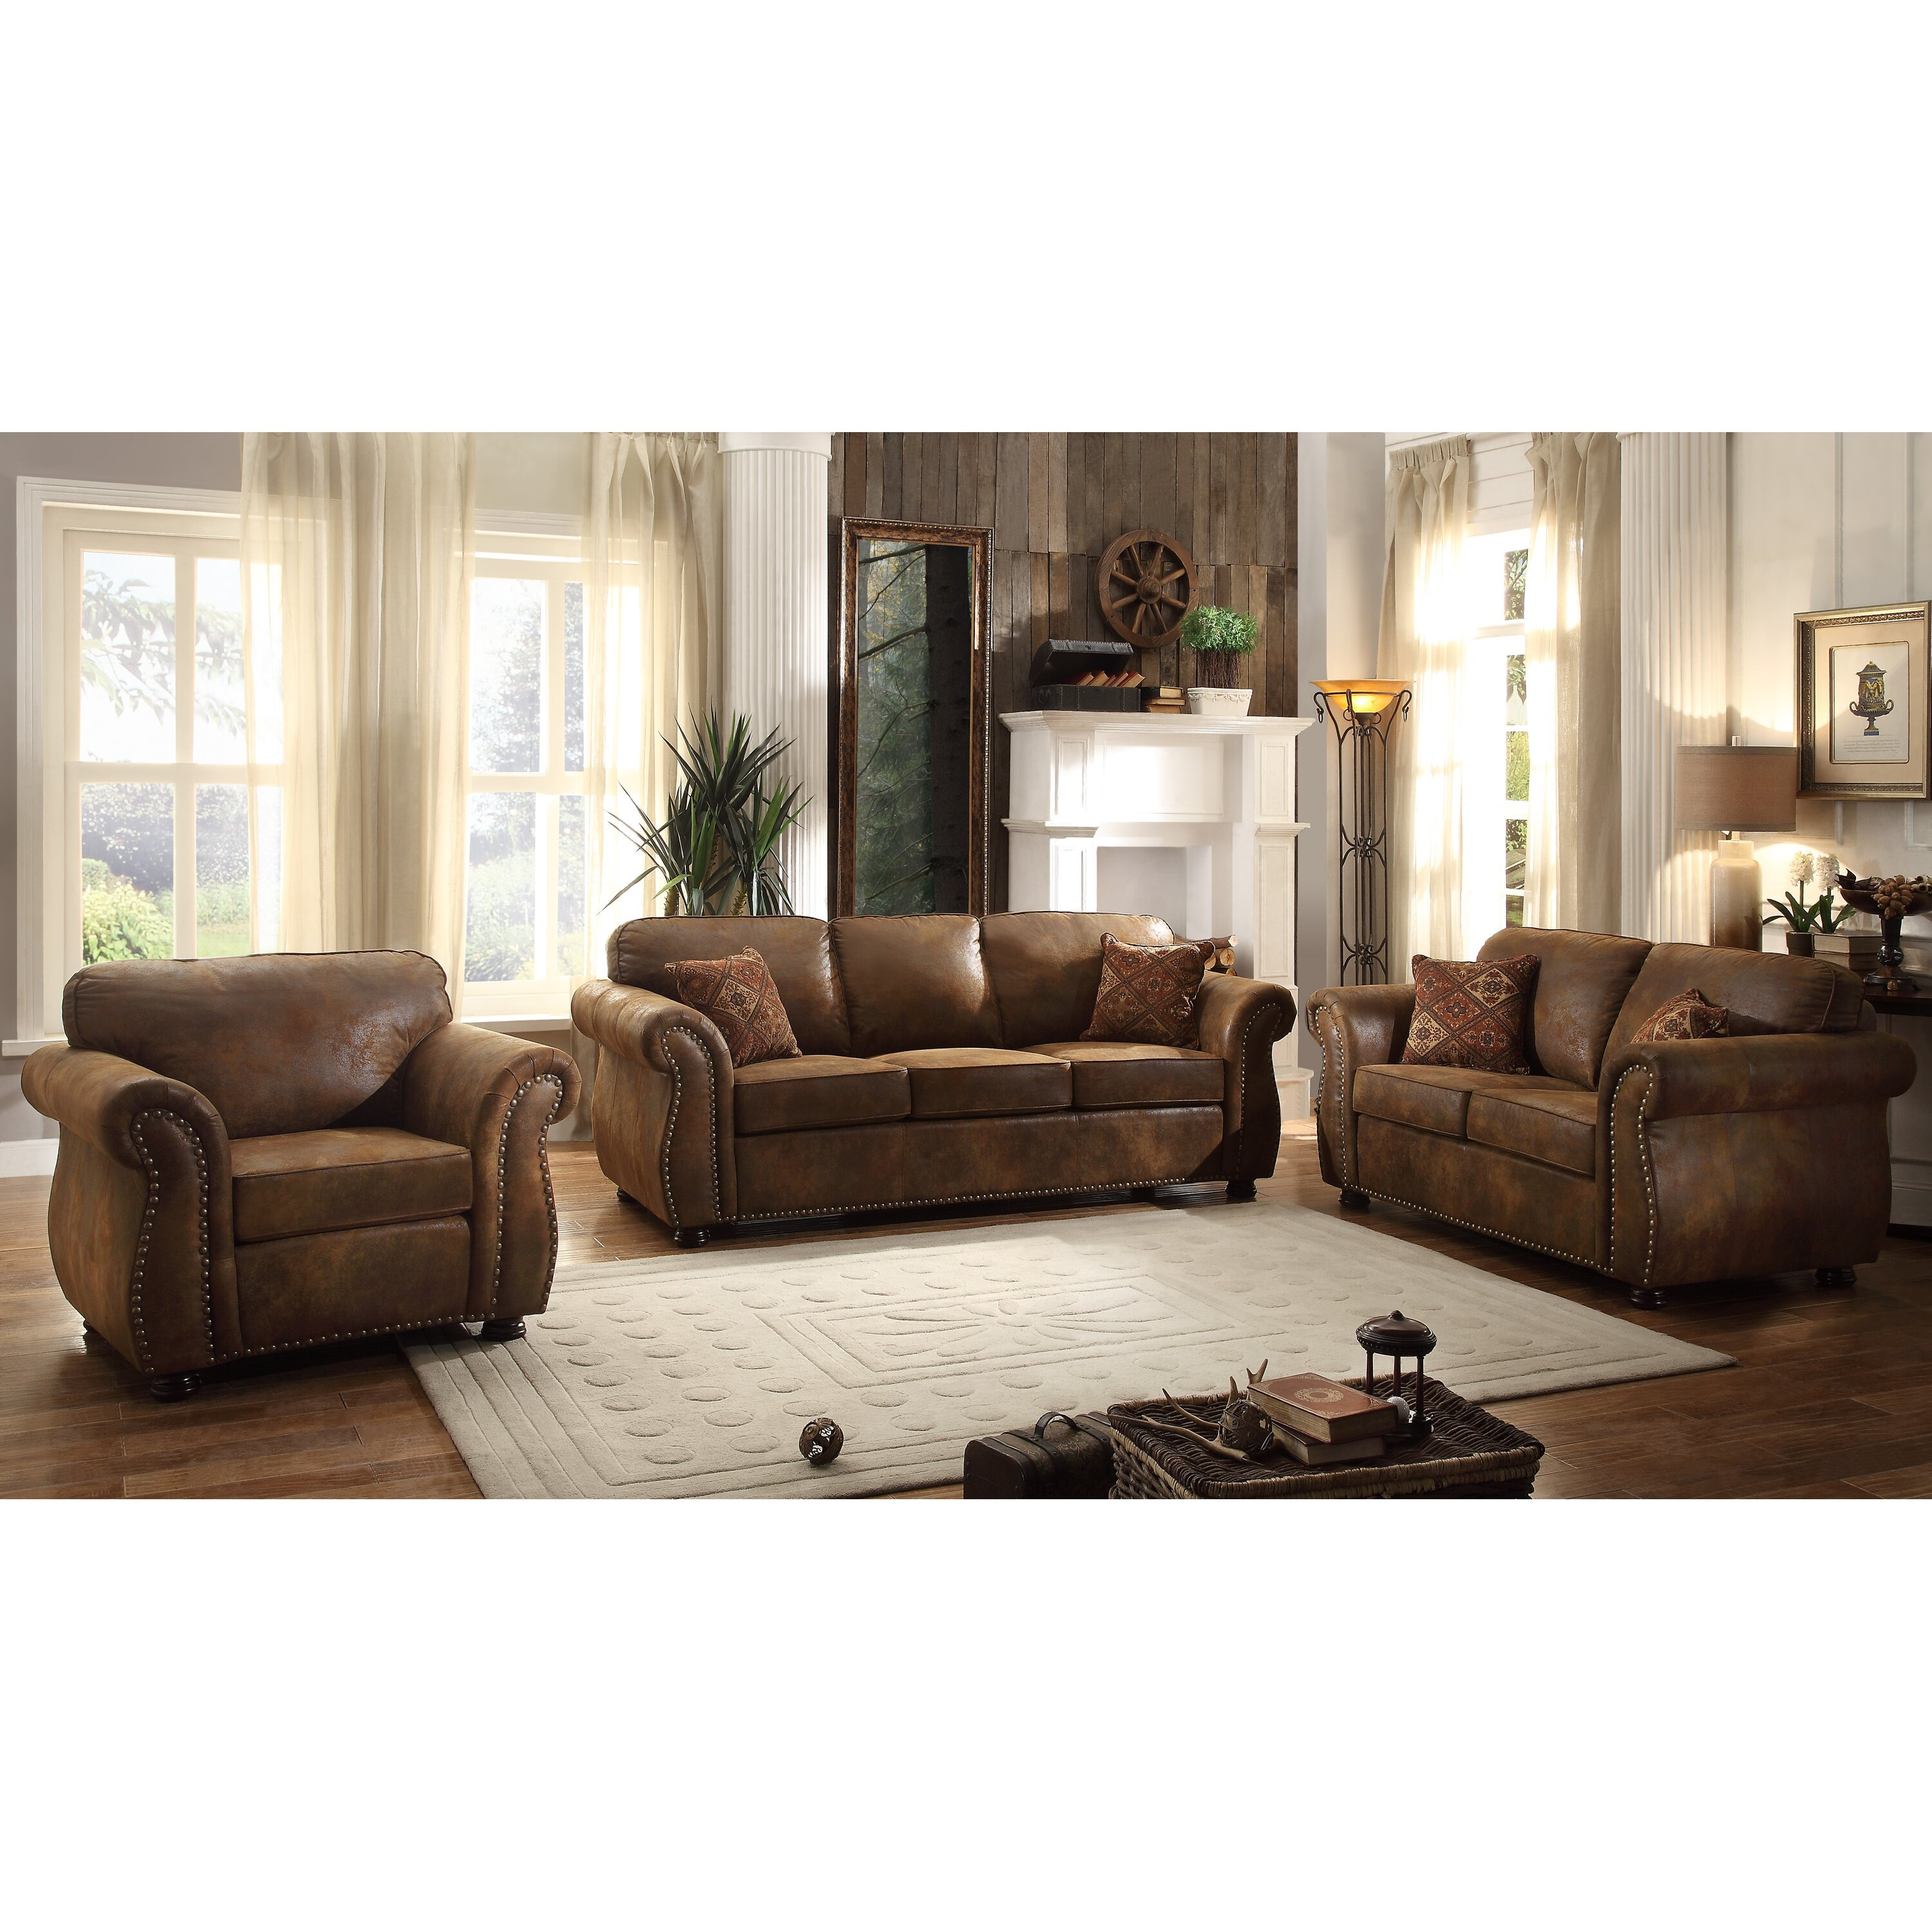 Loon peak 3 piece living room set